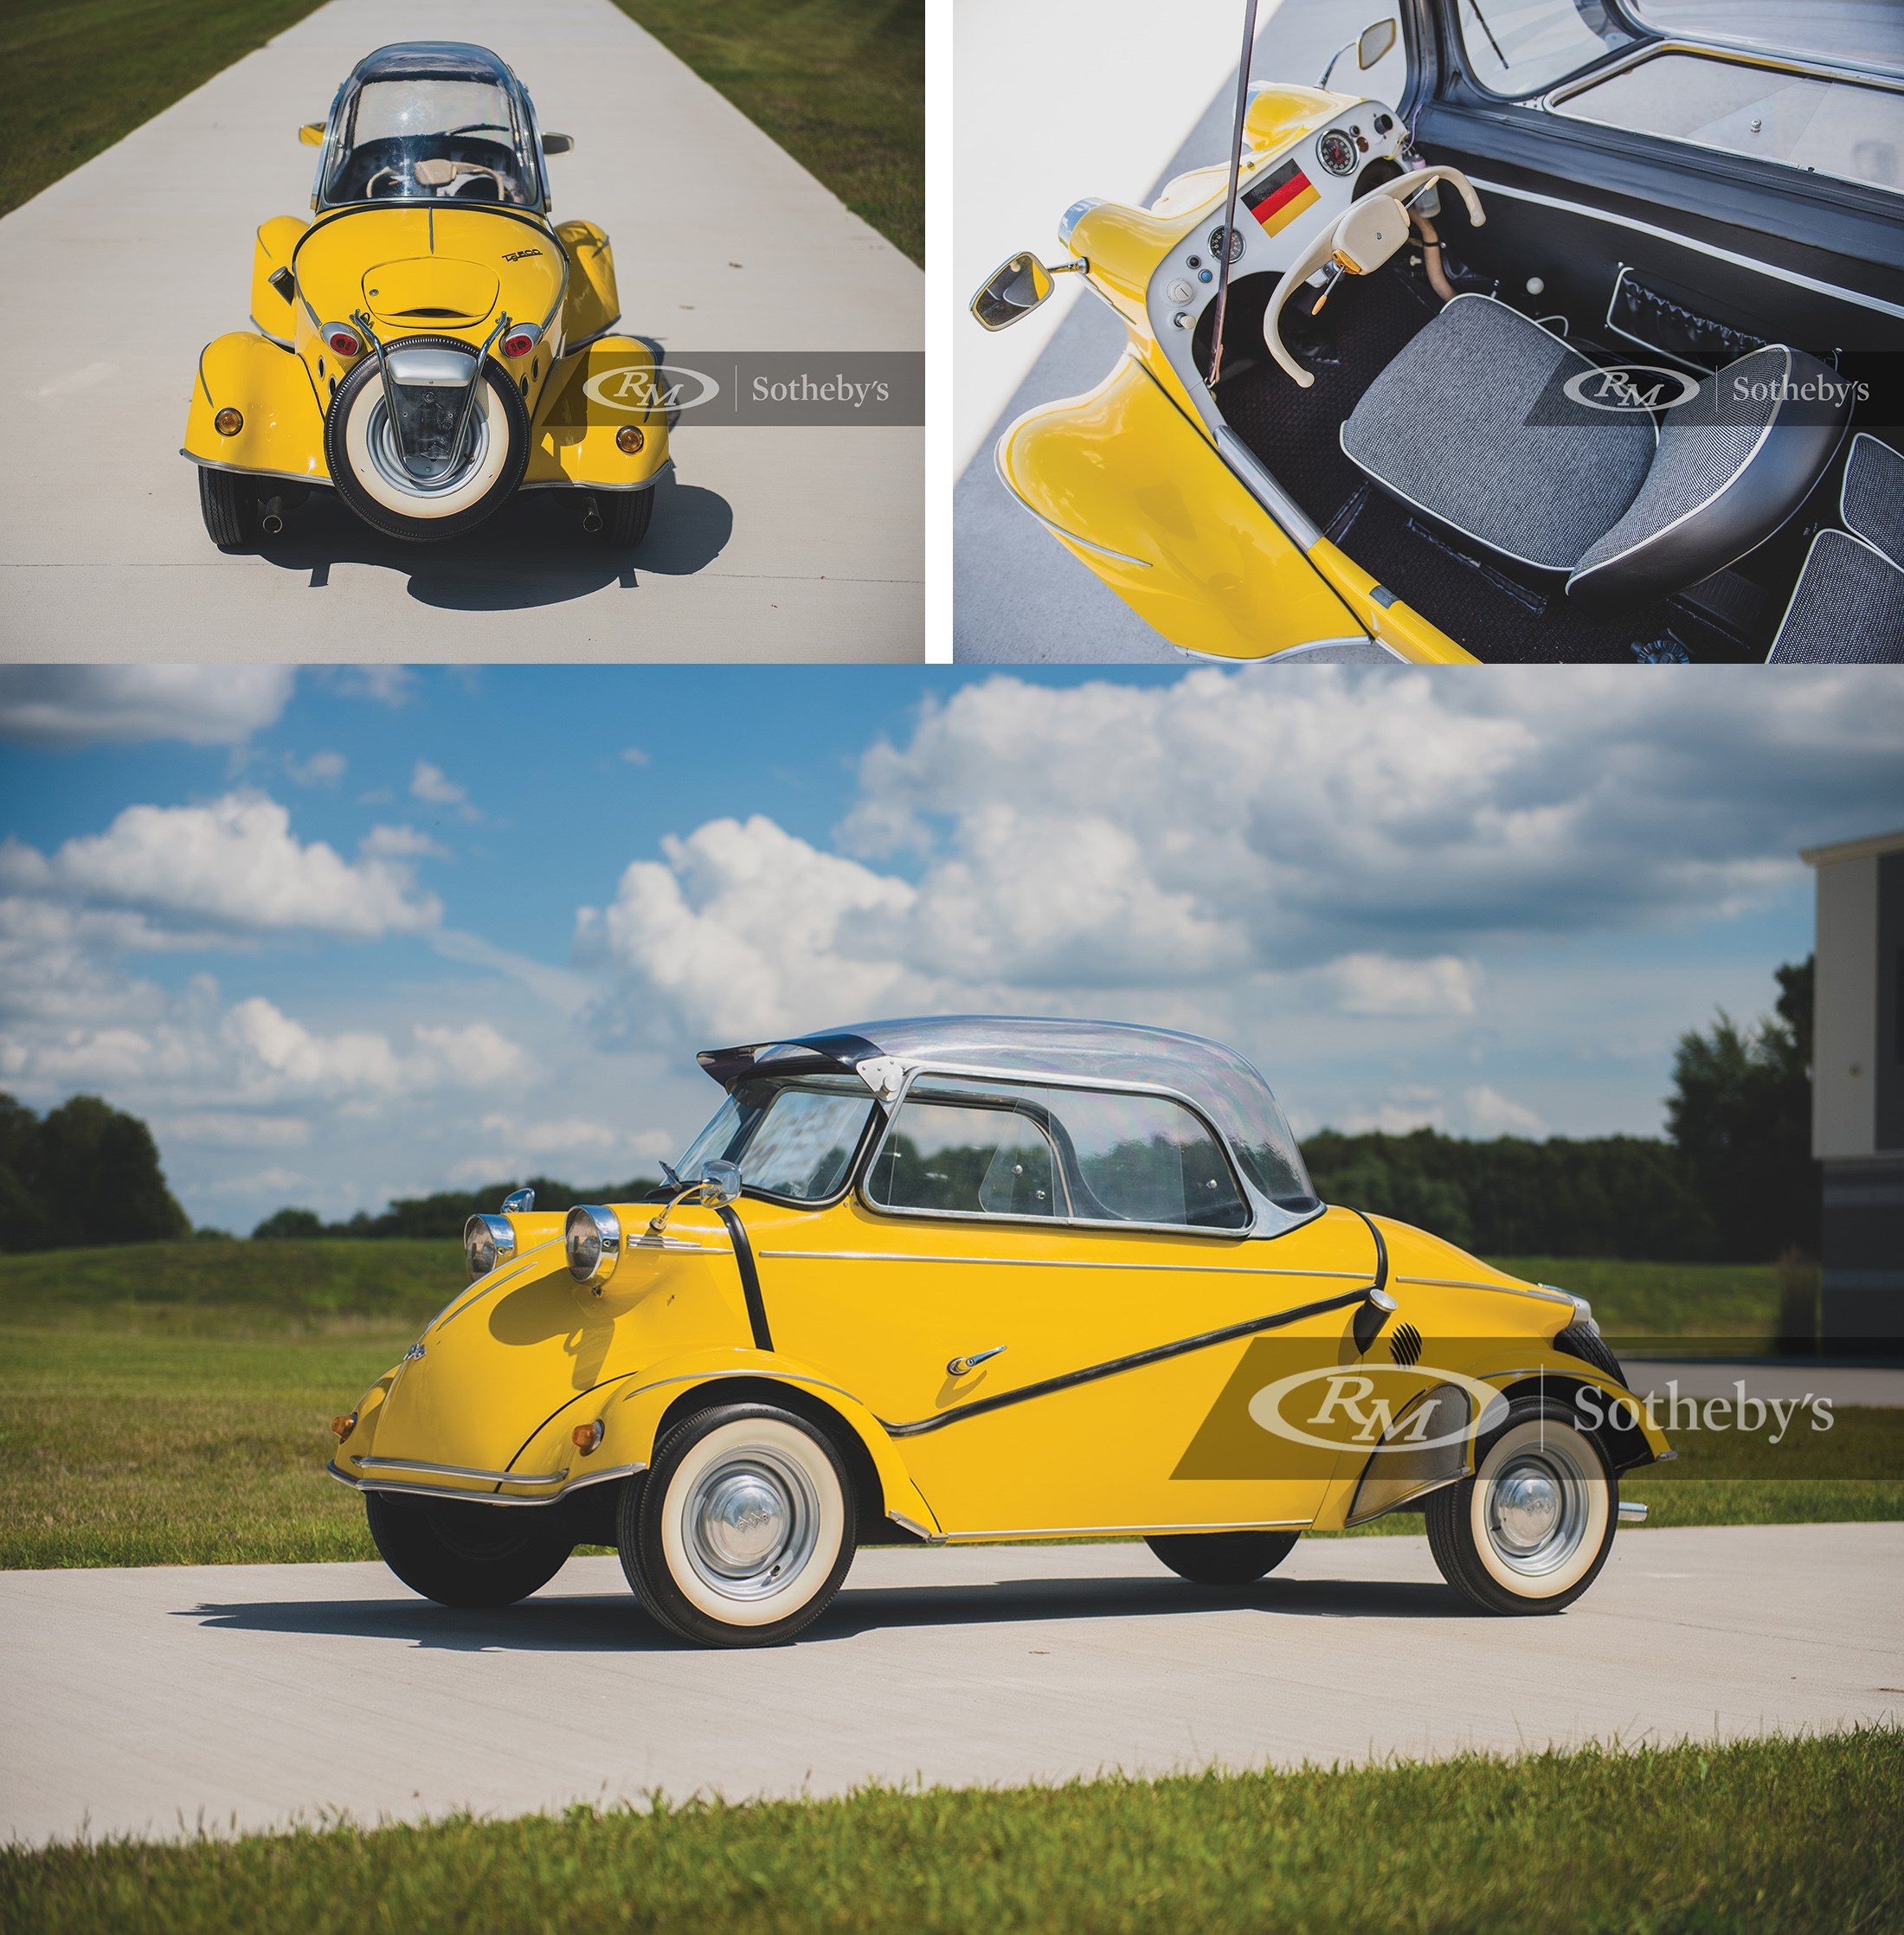 1960 F.M.R. Tg 500 Tiger, RM Sotheby's The Elkhart Collection